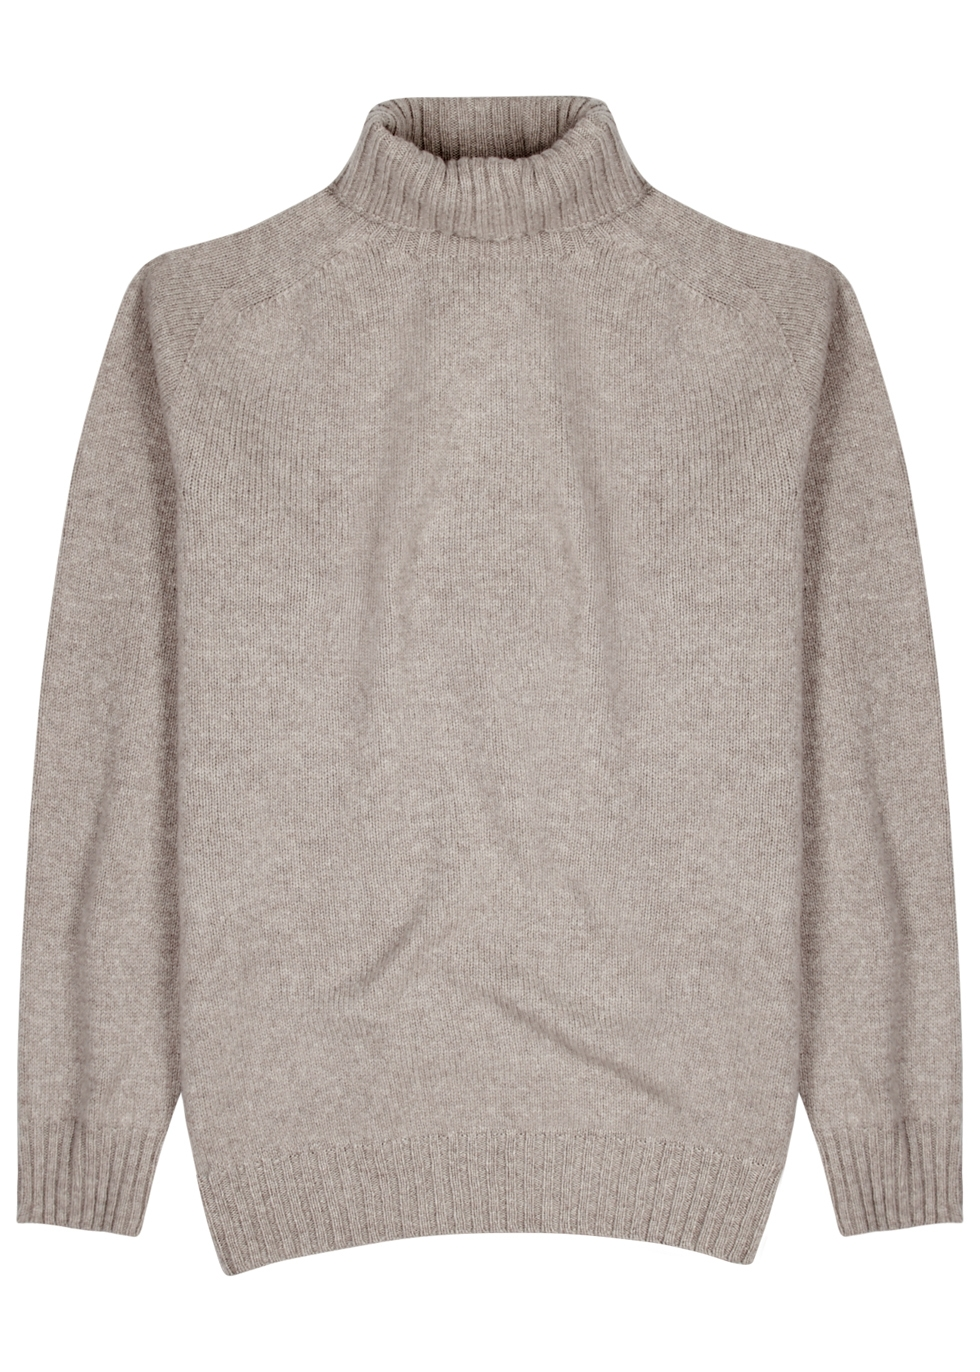 OFFICINE GENERALE TAUPE ROLL-NECK WOOL JUMPER